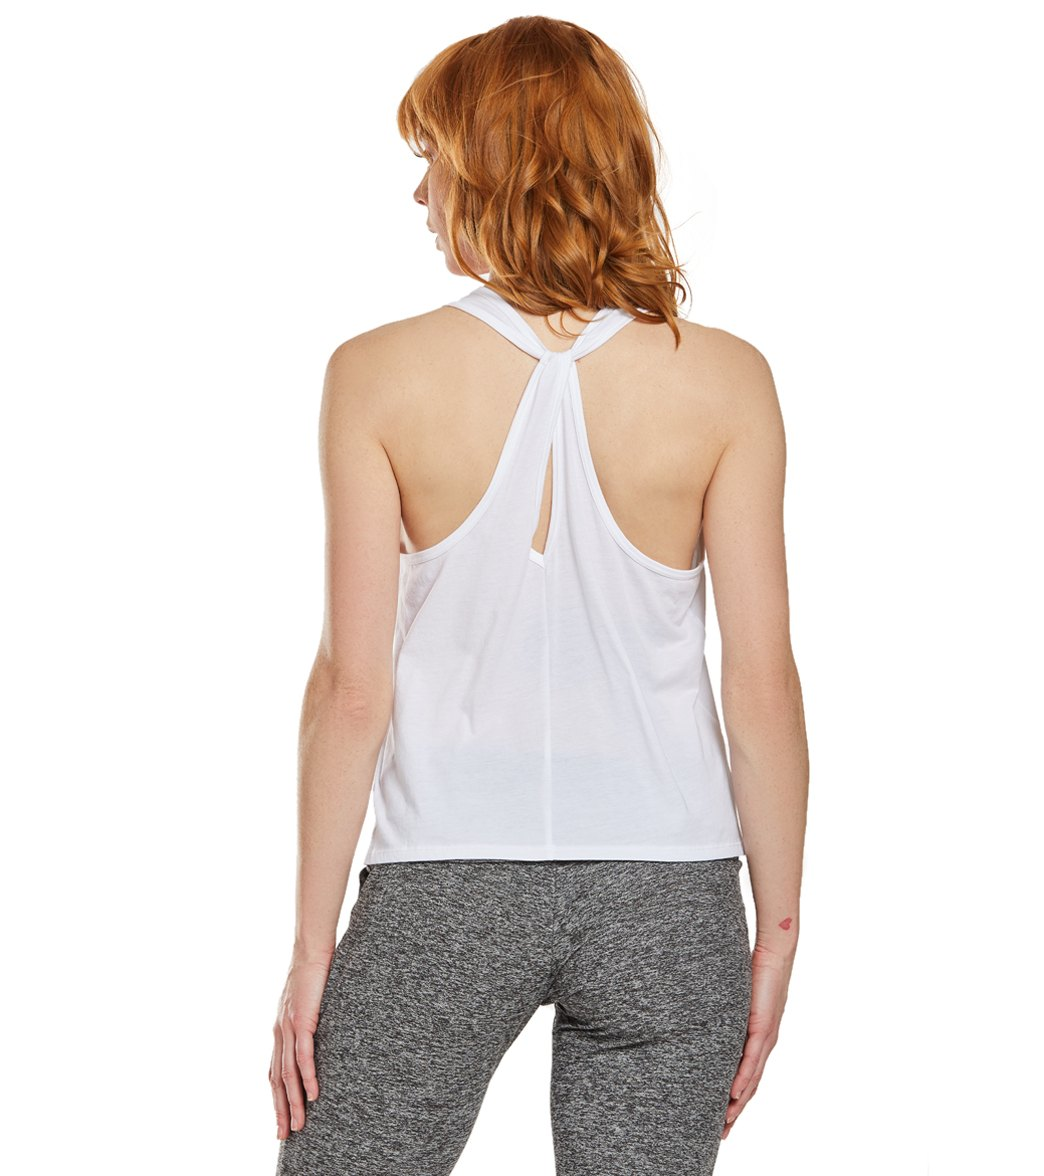 e5729d938 Beyond Yoga To The Point Yoga Tank Top at YogaOutlet.com